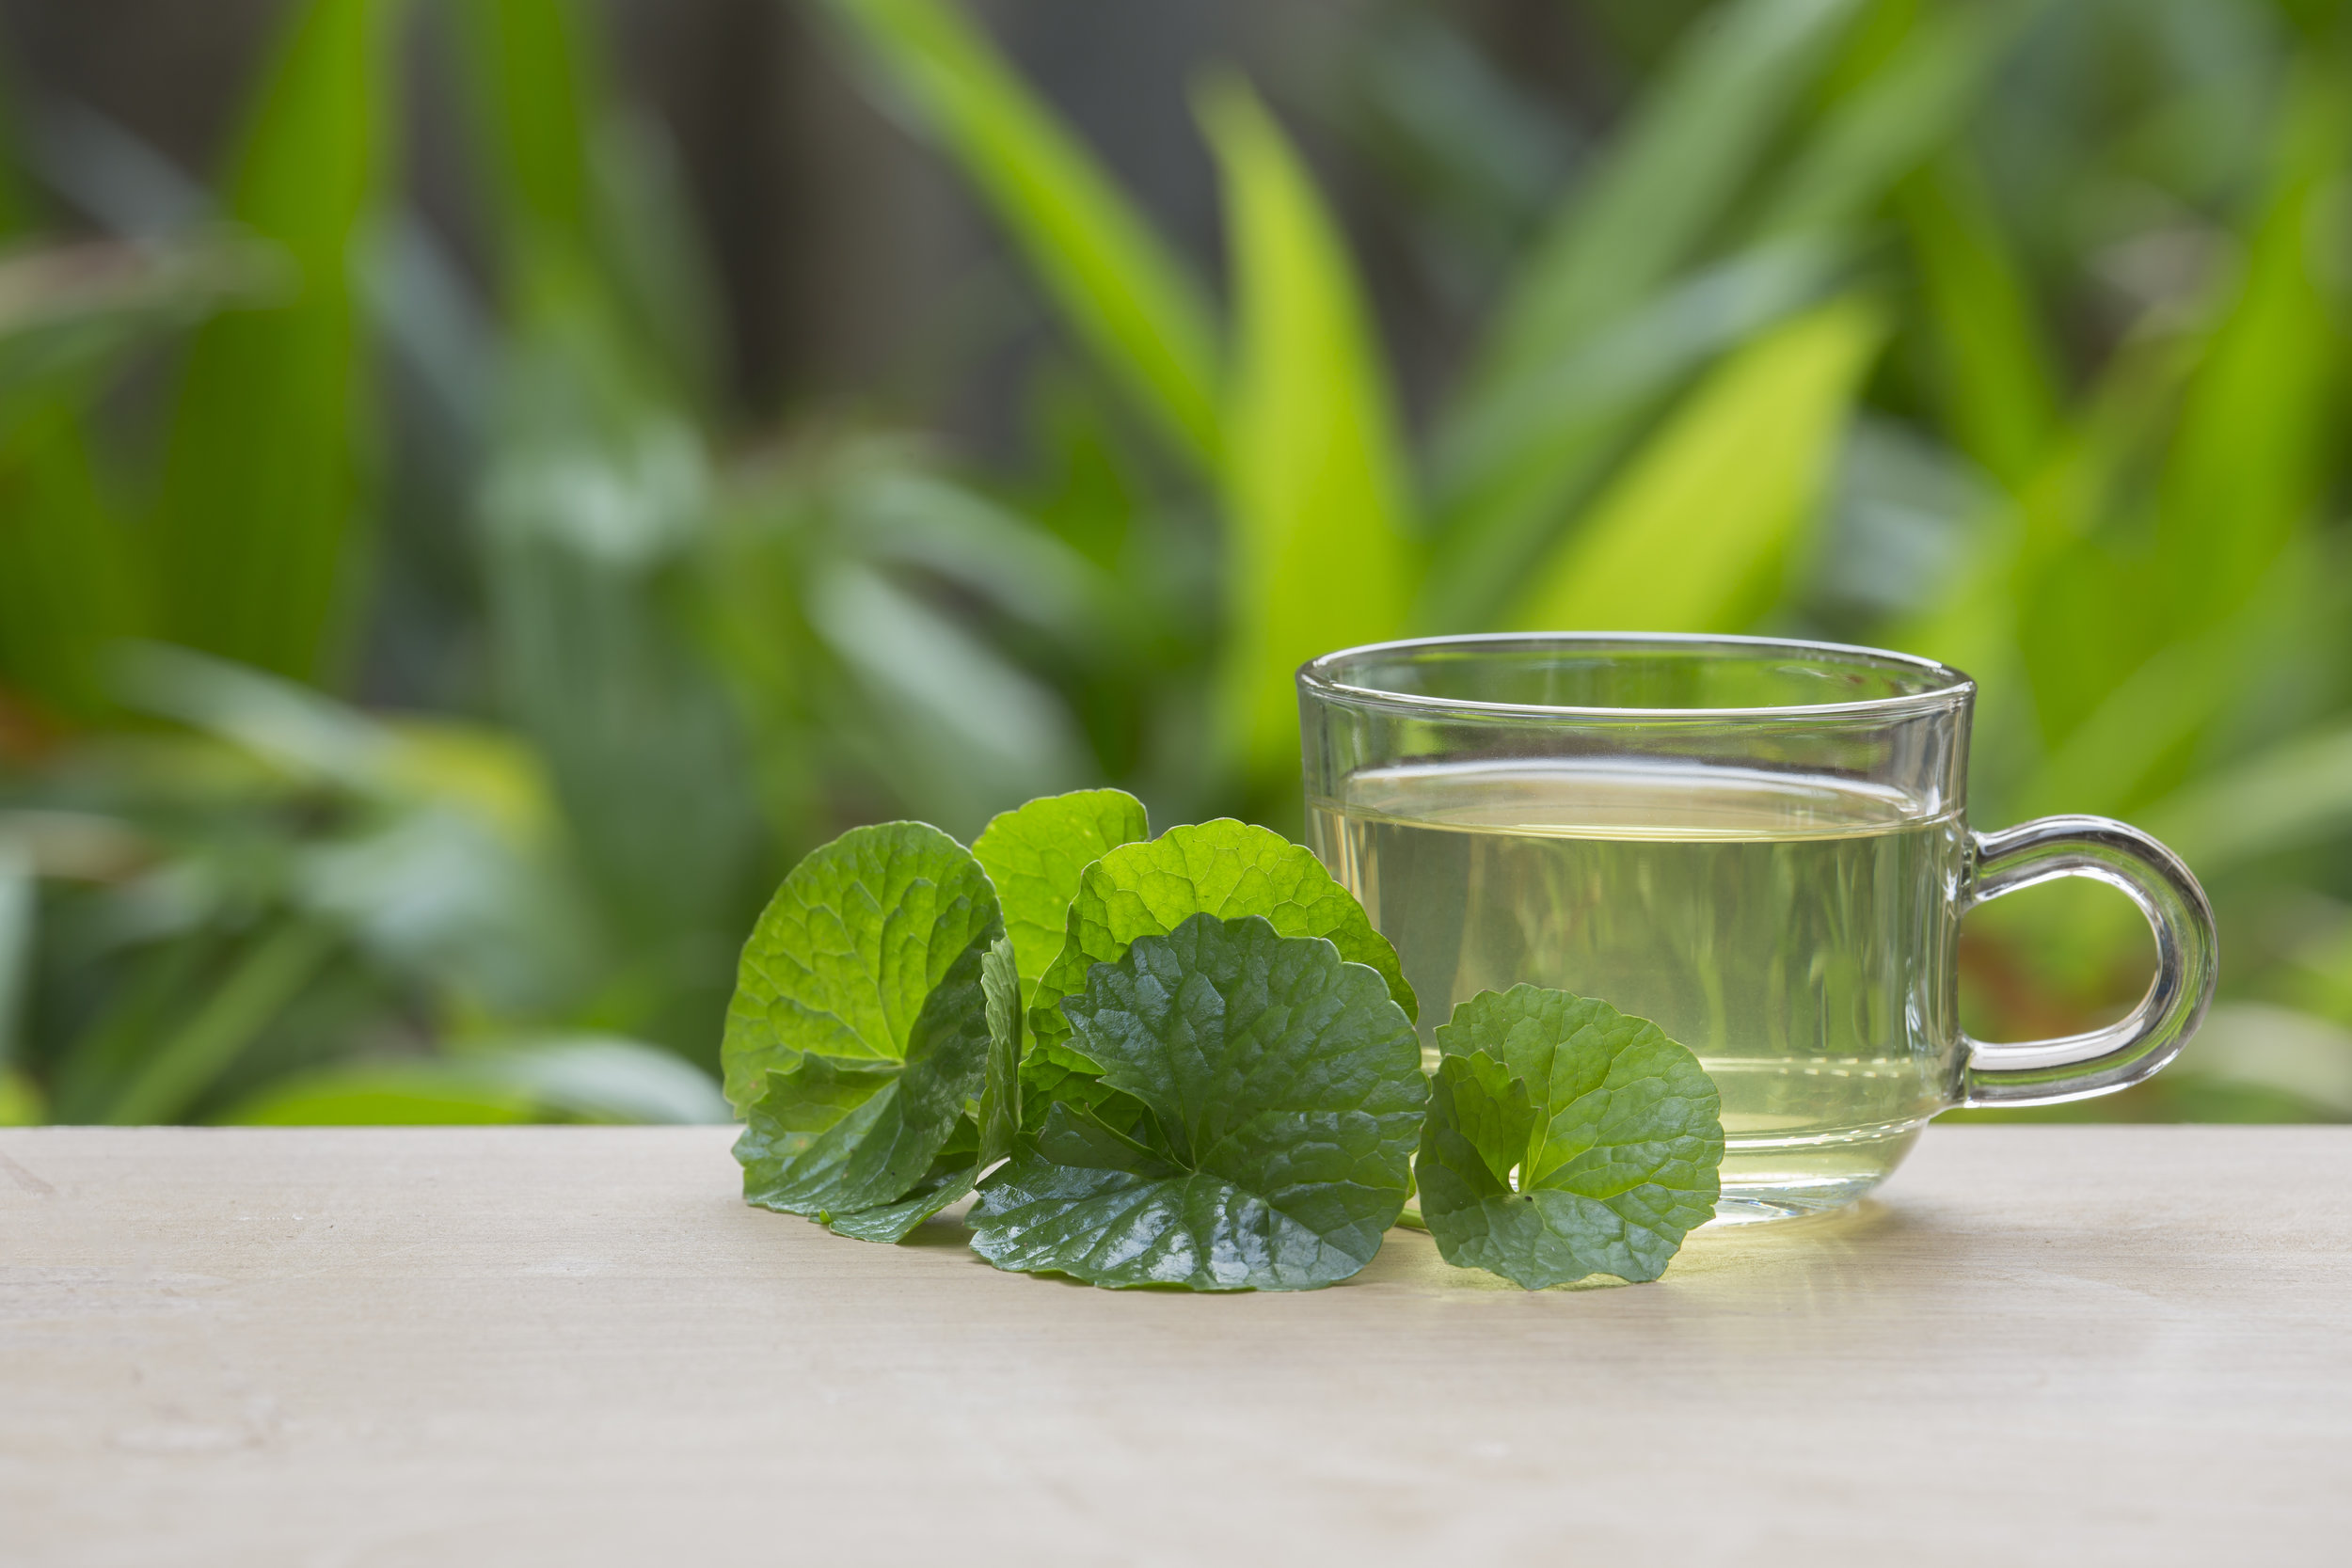 Organic Gotu Kola - It boosts the formation of collagen and skin tissue, which is crucial in maintaining the skin's elasticity and youthful glow. Another benefit that gotu kola is most known for is its ability to improve blood circulation.